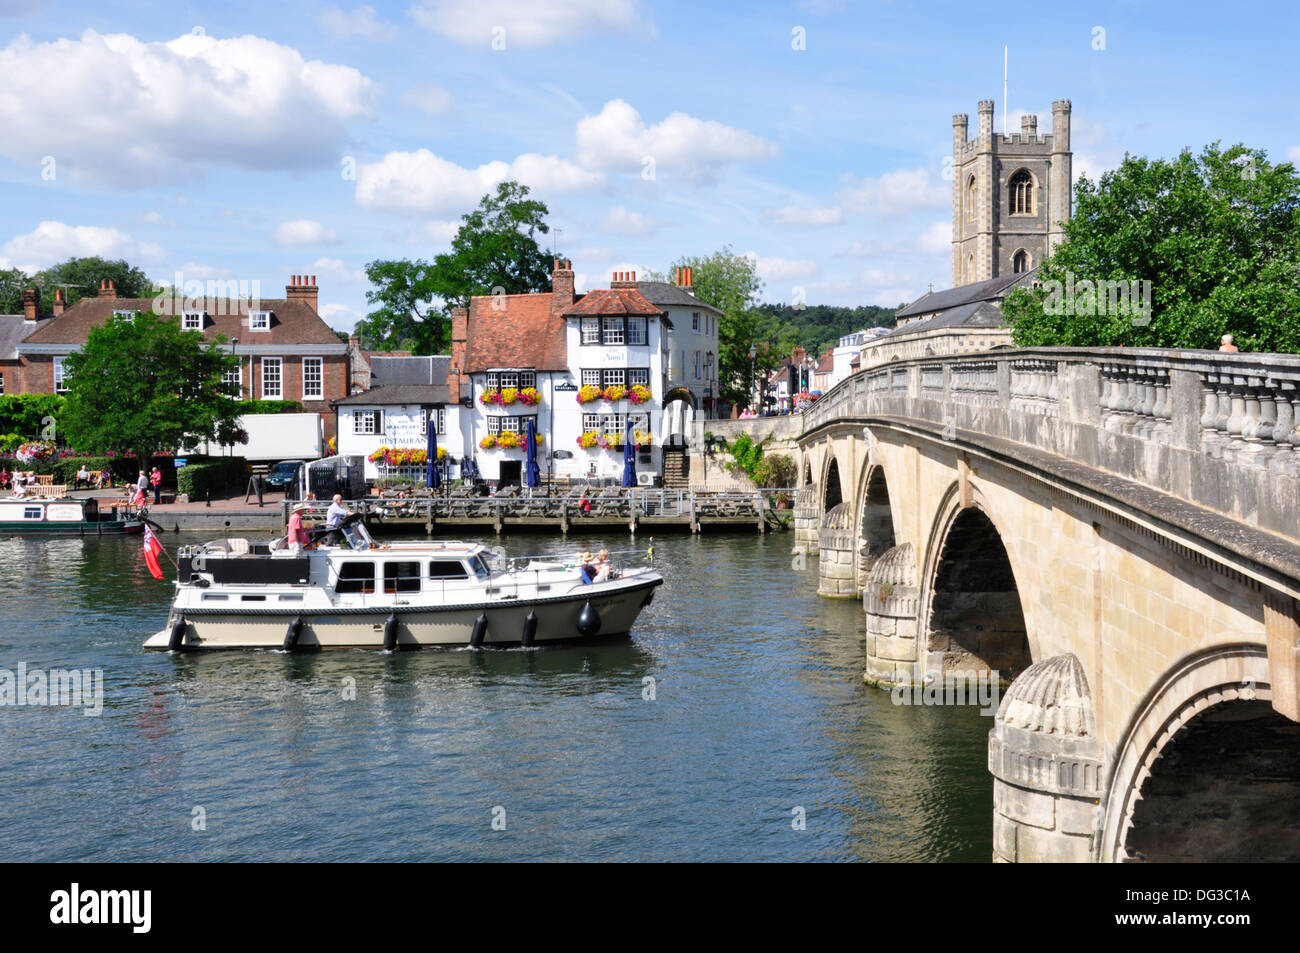 Oxon - Henley on Thames - view the town bridge - Angel inn - boat approaching the bridge - summer sunlight - blue sky - Stock Image